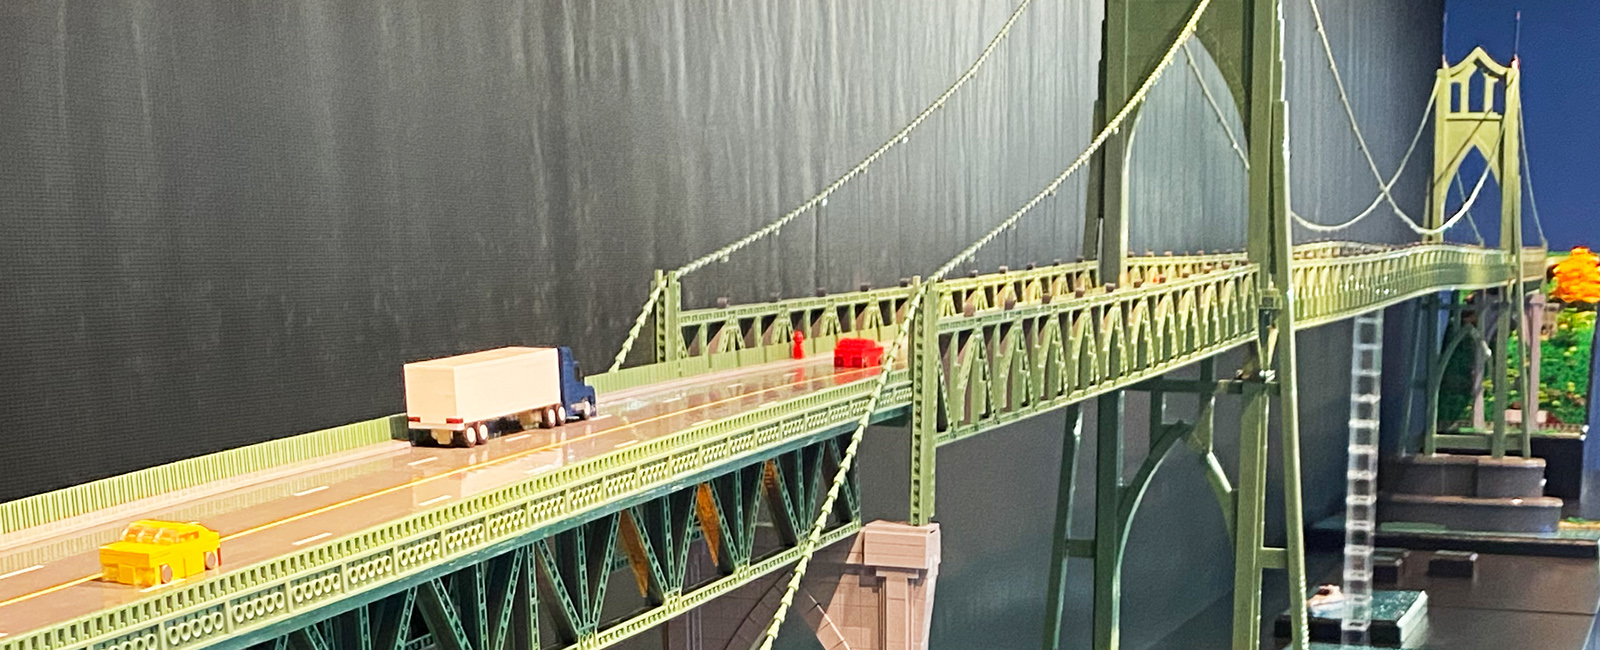 LEGO ST. JOHNS BRIDGE, ERIK MATTSON, CONCOURSE DE DISPLAY CASE